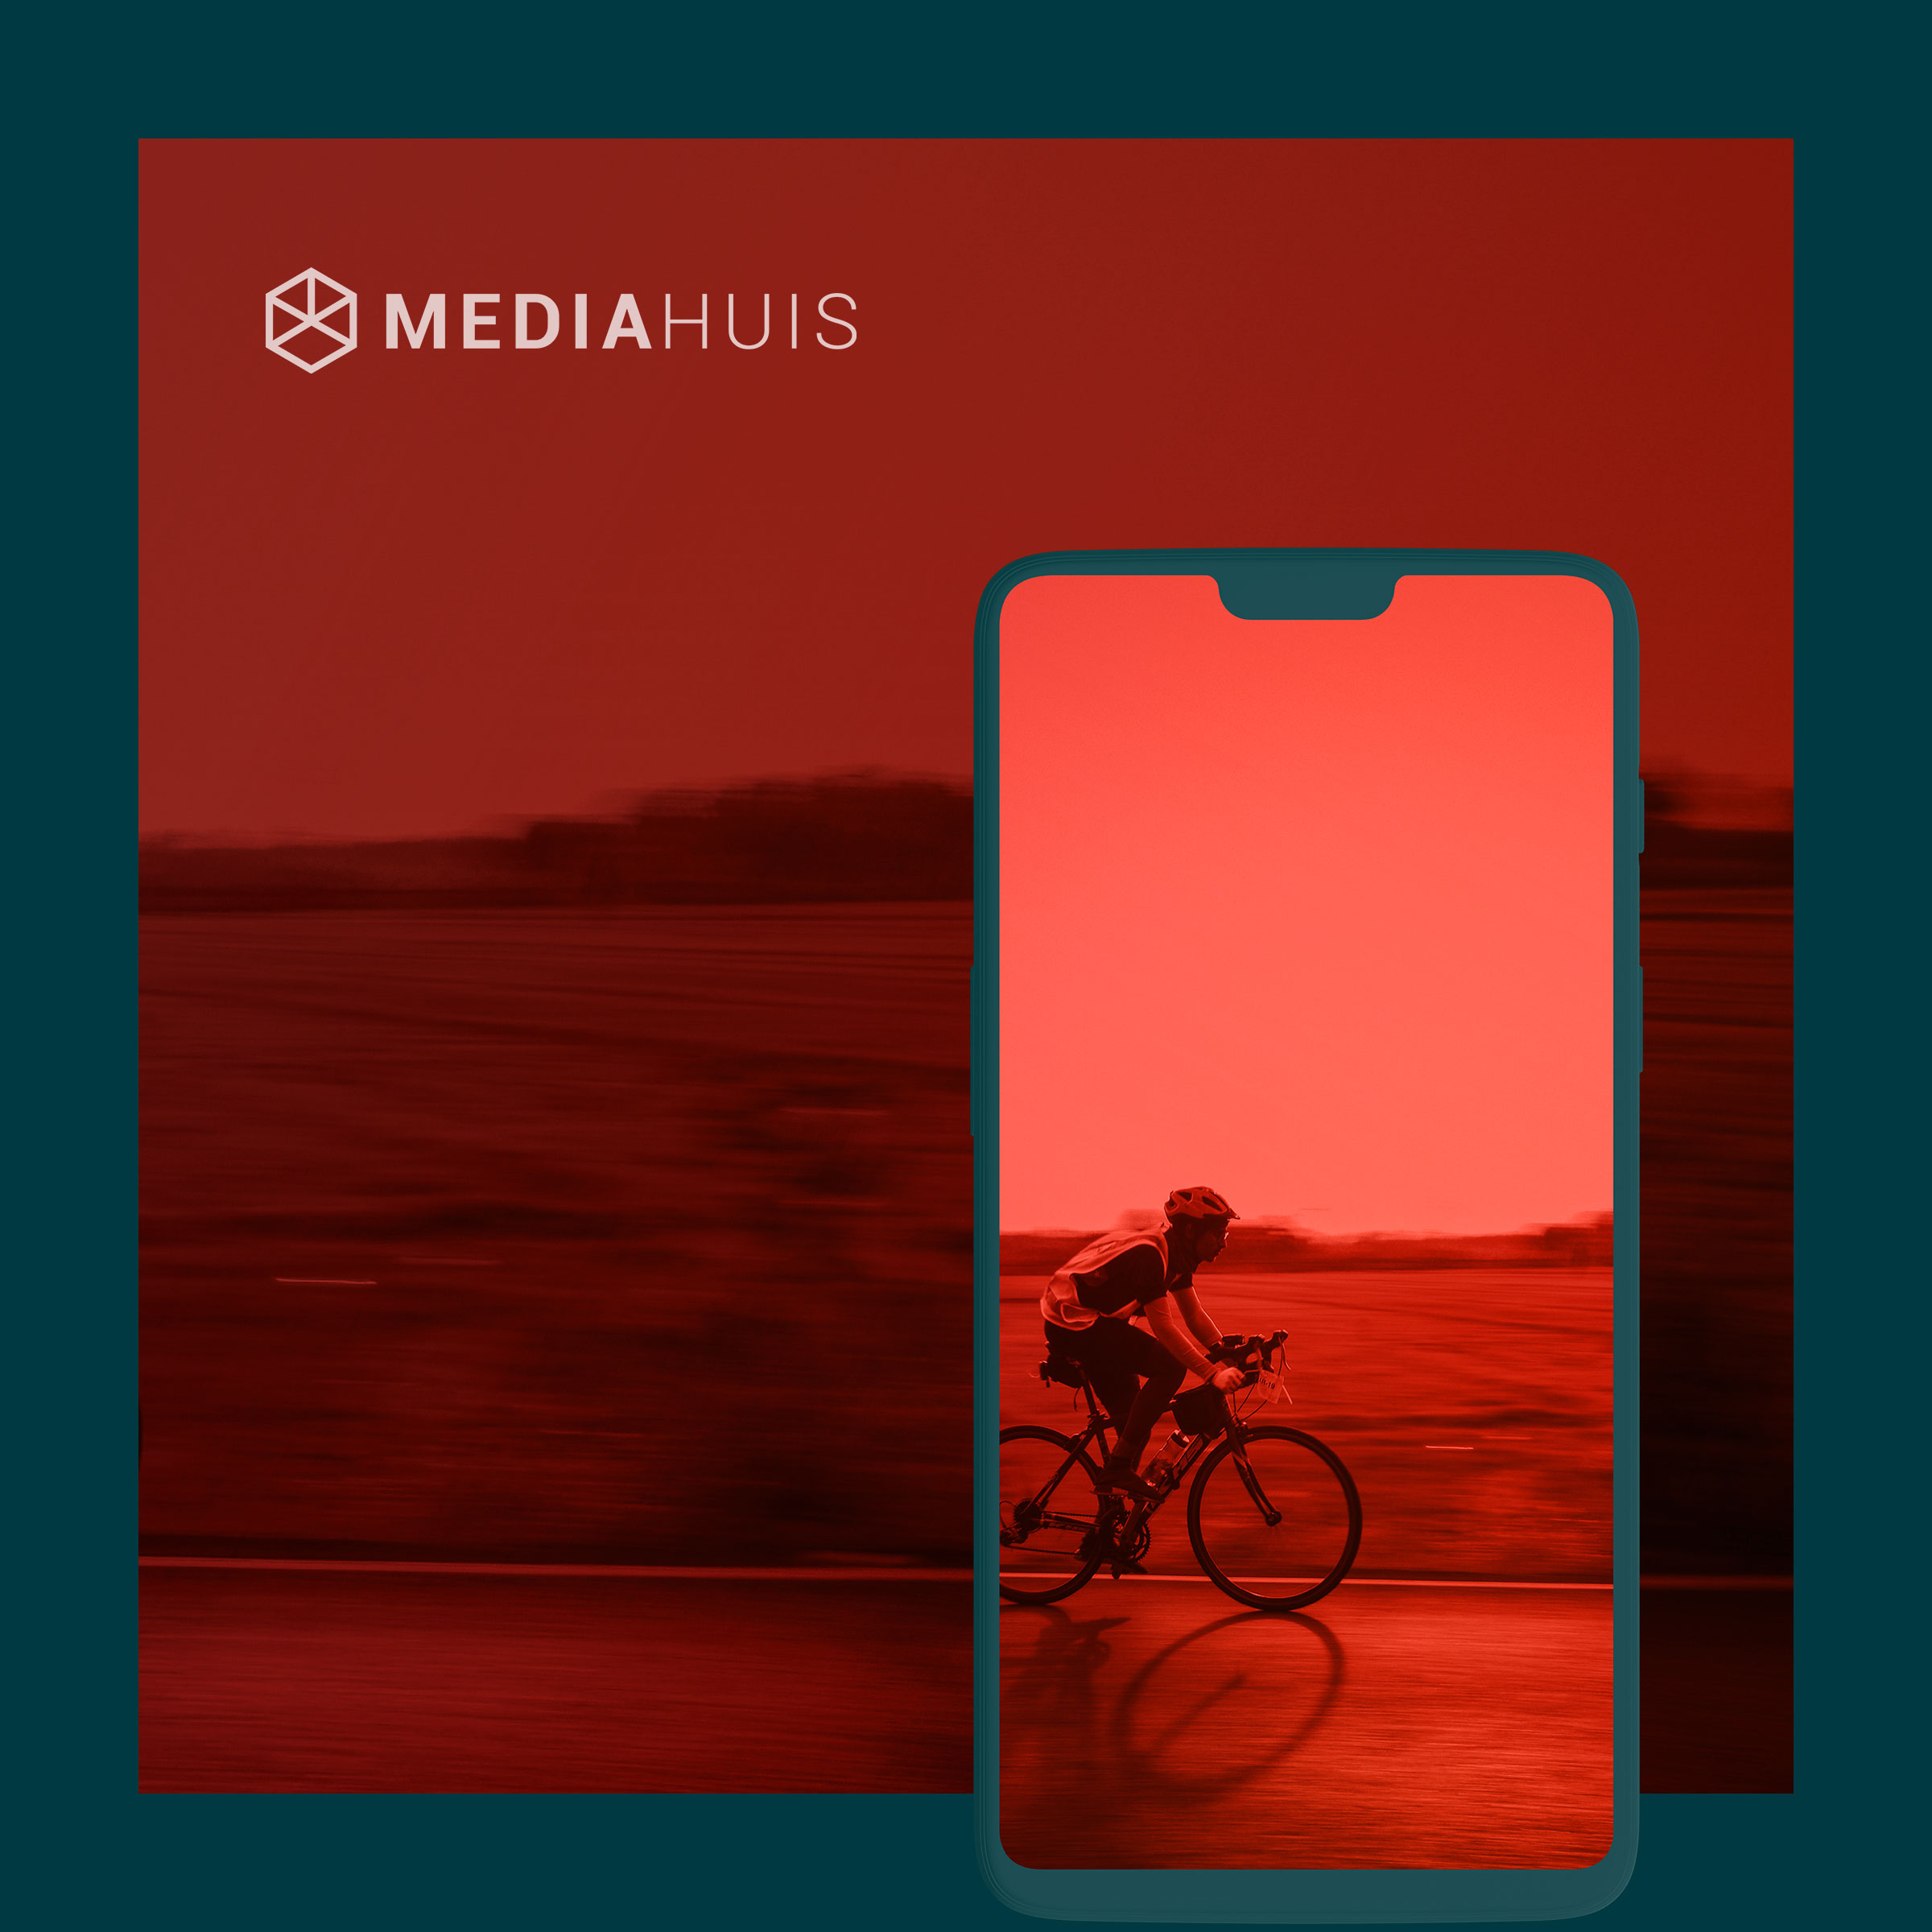 News publisher Mediahuis delivers time-sensitive video content at speed with 24i's cloud-hosted Smart Video solution